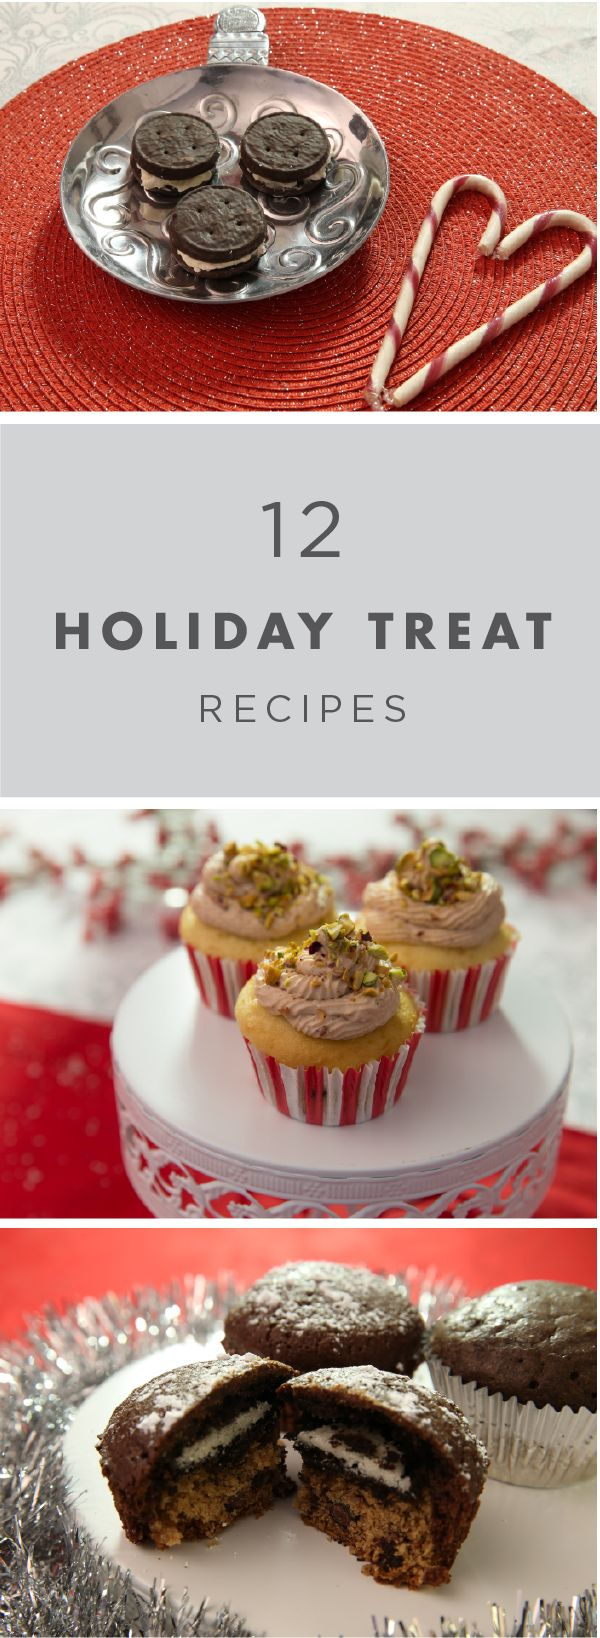 Try out these easy dessert recipes at your next holiday gathering. These candy cane stuffed peppermint bites are the perfect winter treat, and your guests will go crazy for these cannoli stuffed cupcakes. Impress your friends and family with these creative holiday treats.